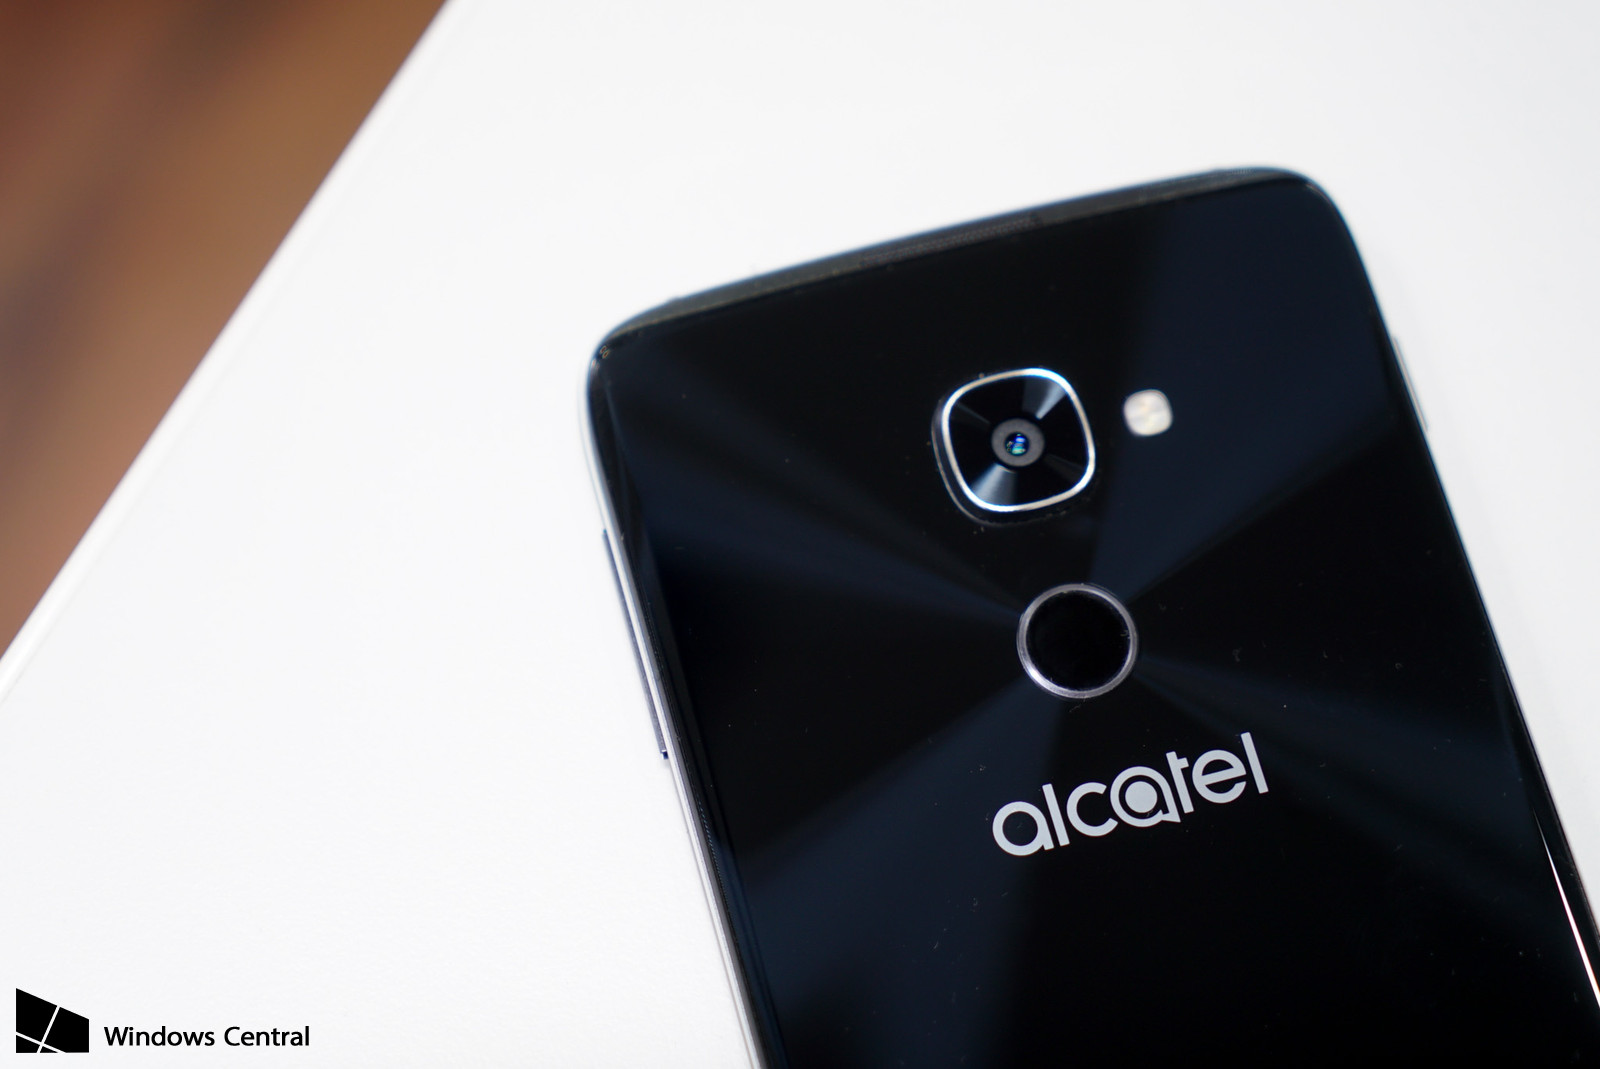 Alcatel Idol 4S Window Phone